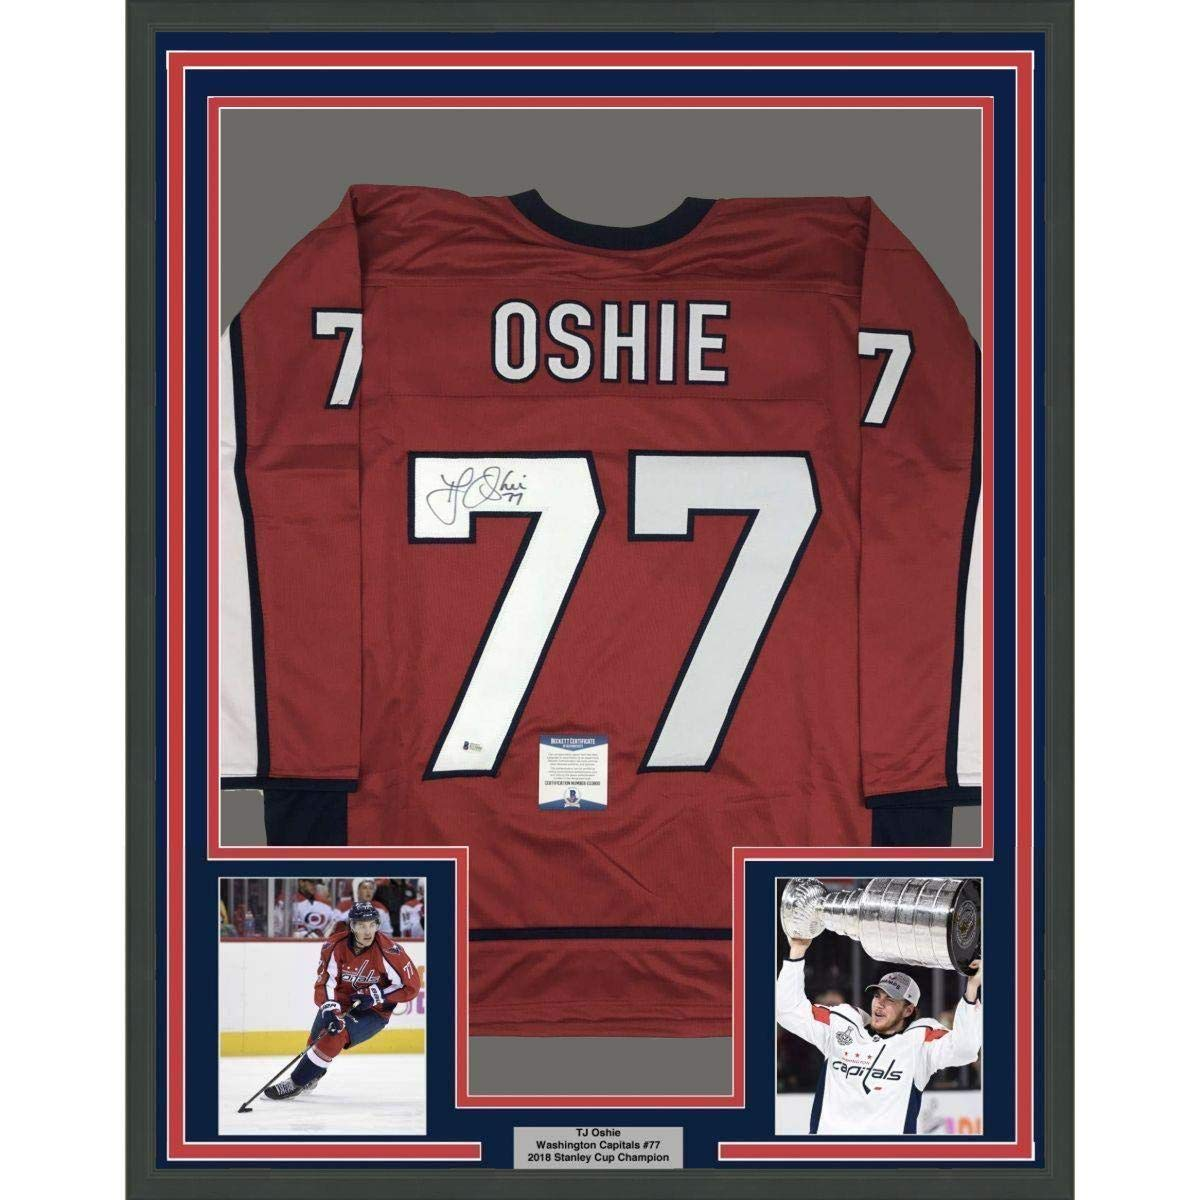 3787bd819 Signed T.J. Oshie Jersey - FRAMED TJ 33x42 Red Beckett COA - Beckett  Authentication - Autographed NHL Jerseys at Amazon s Sports Collectibles  Store